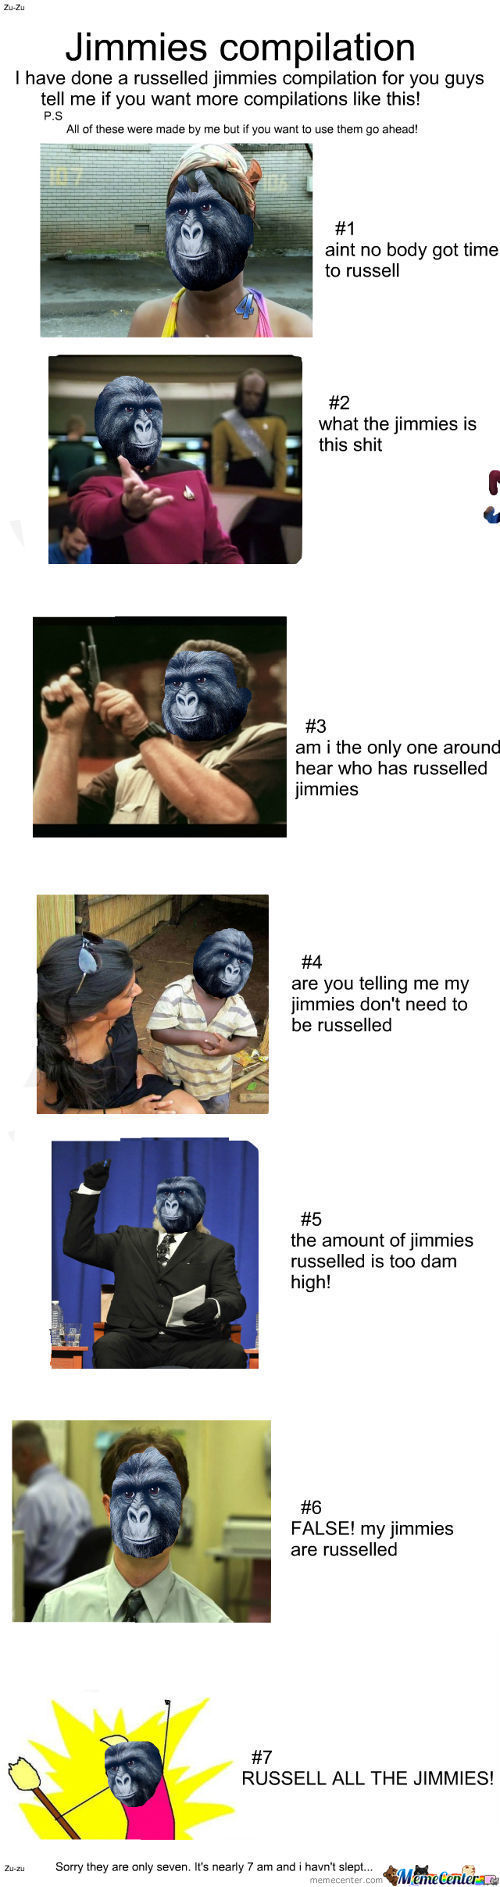 Jimmies Compilation #1